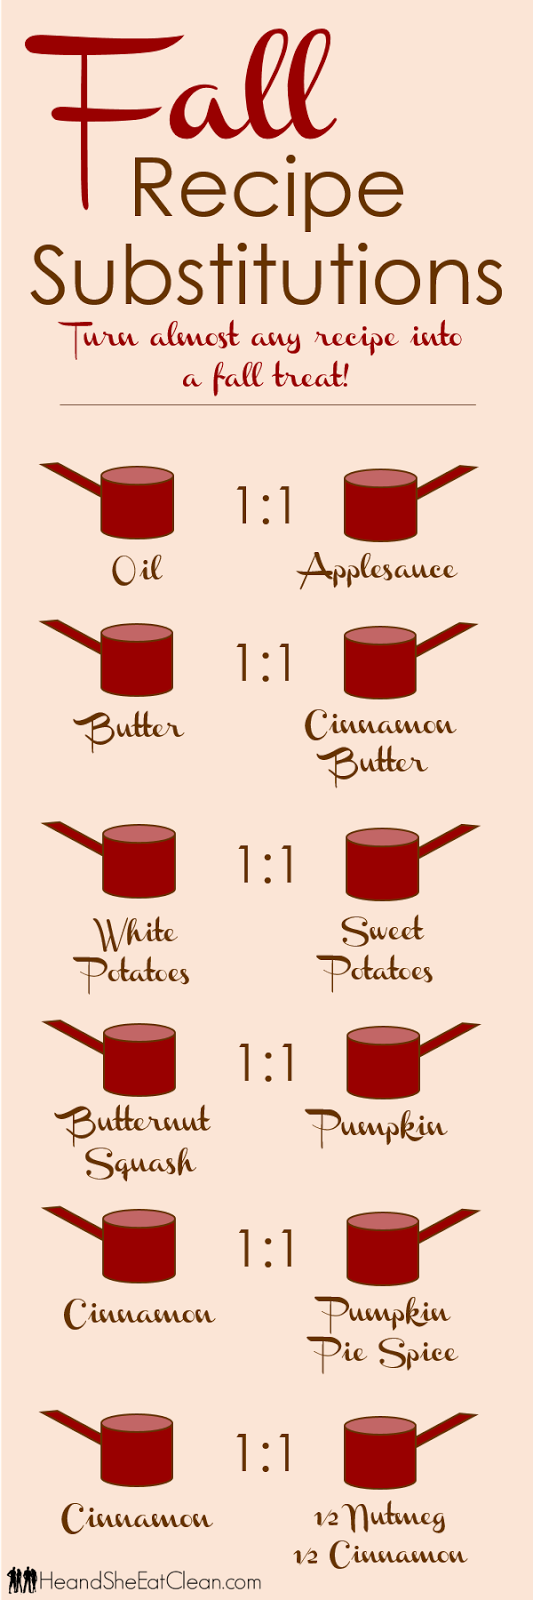 Fall-Recipe-Substitutions-to-make-any-recipe-feel-like-fall-clean-eating-swaps-how-to-switch-holiday-baking-he-she-eat-clean.jpg.png